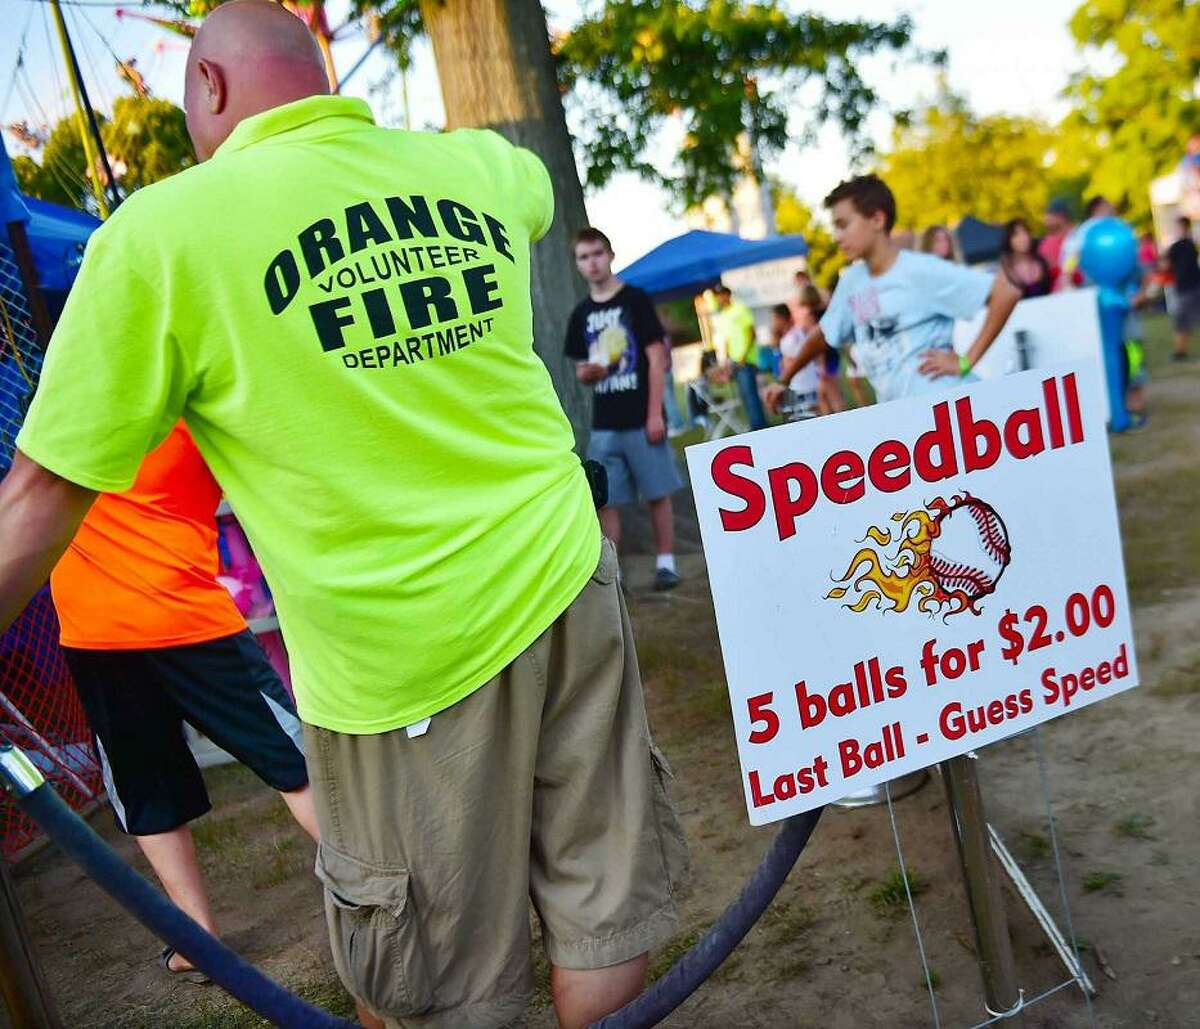 A volunteer steps up to help with games at a previous Orange Volunteer Firemen's Carnival.